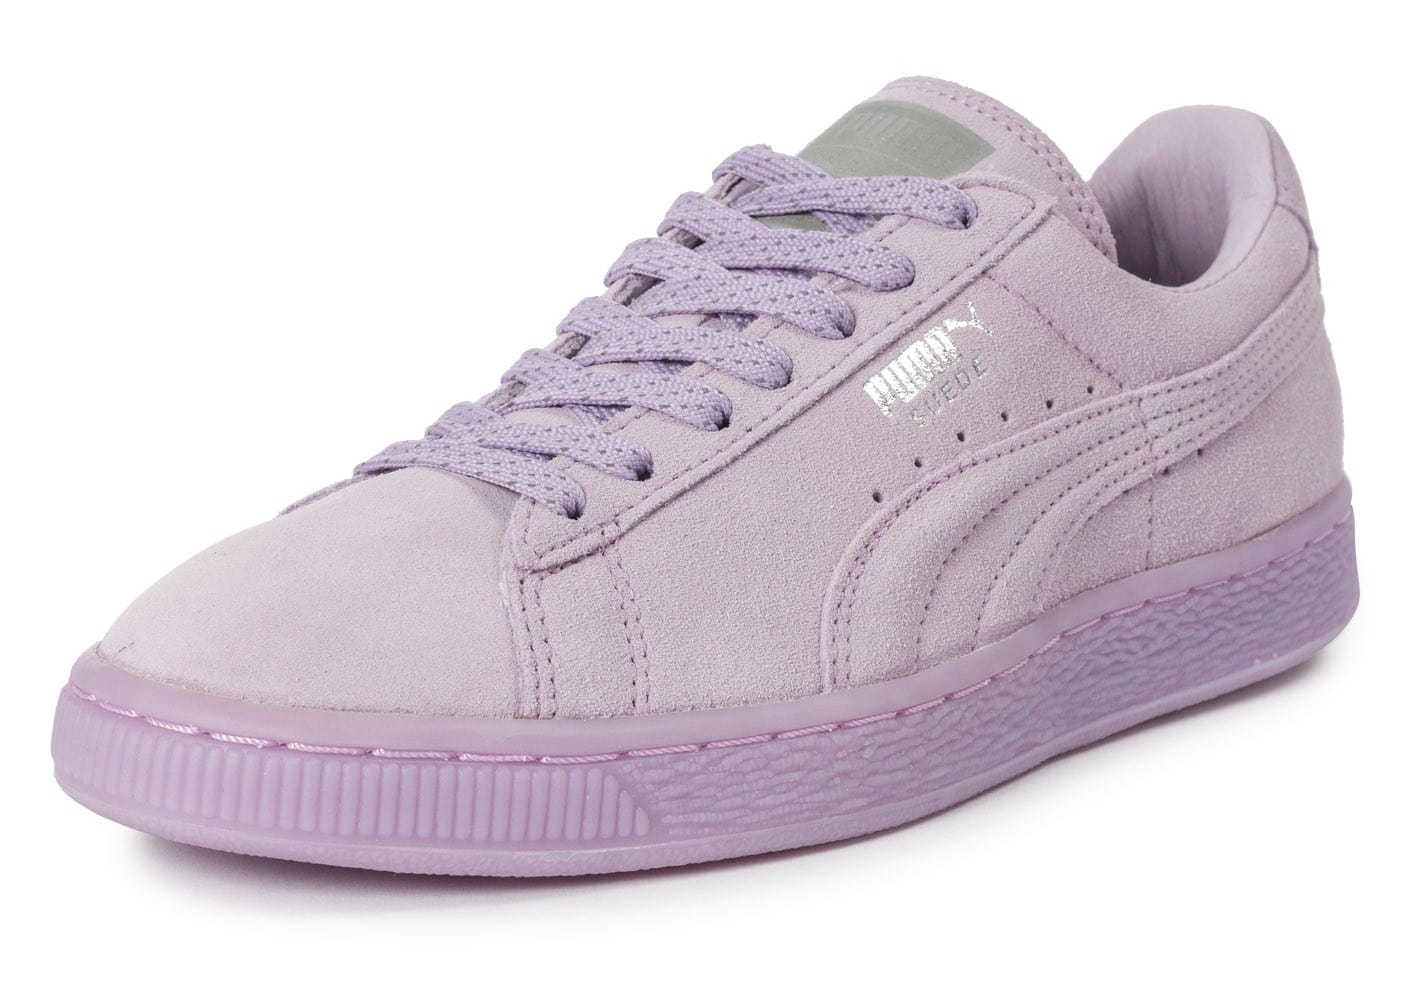 Htxwnaqs Suede Classic Puma Femme Baskets Chaussures Violet Iced Mono sQrthdC